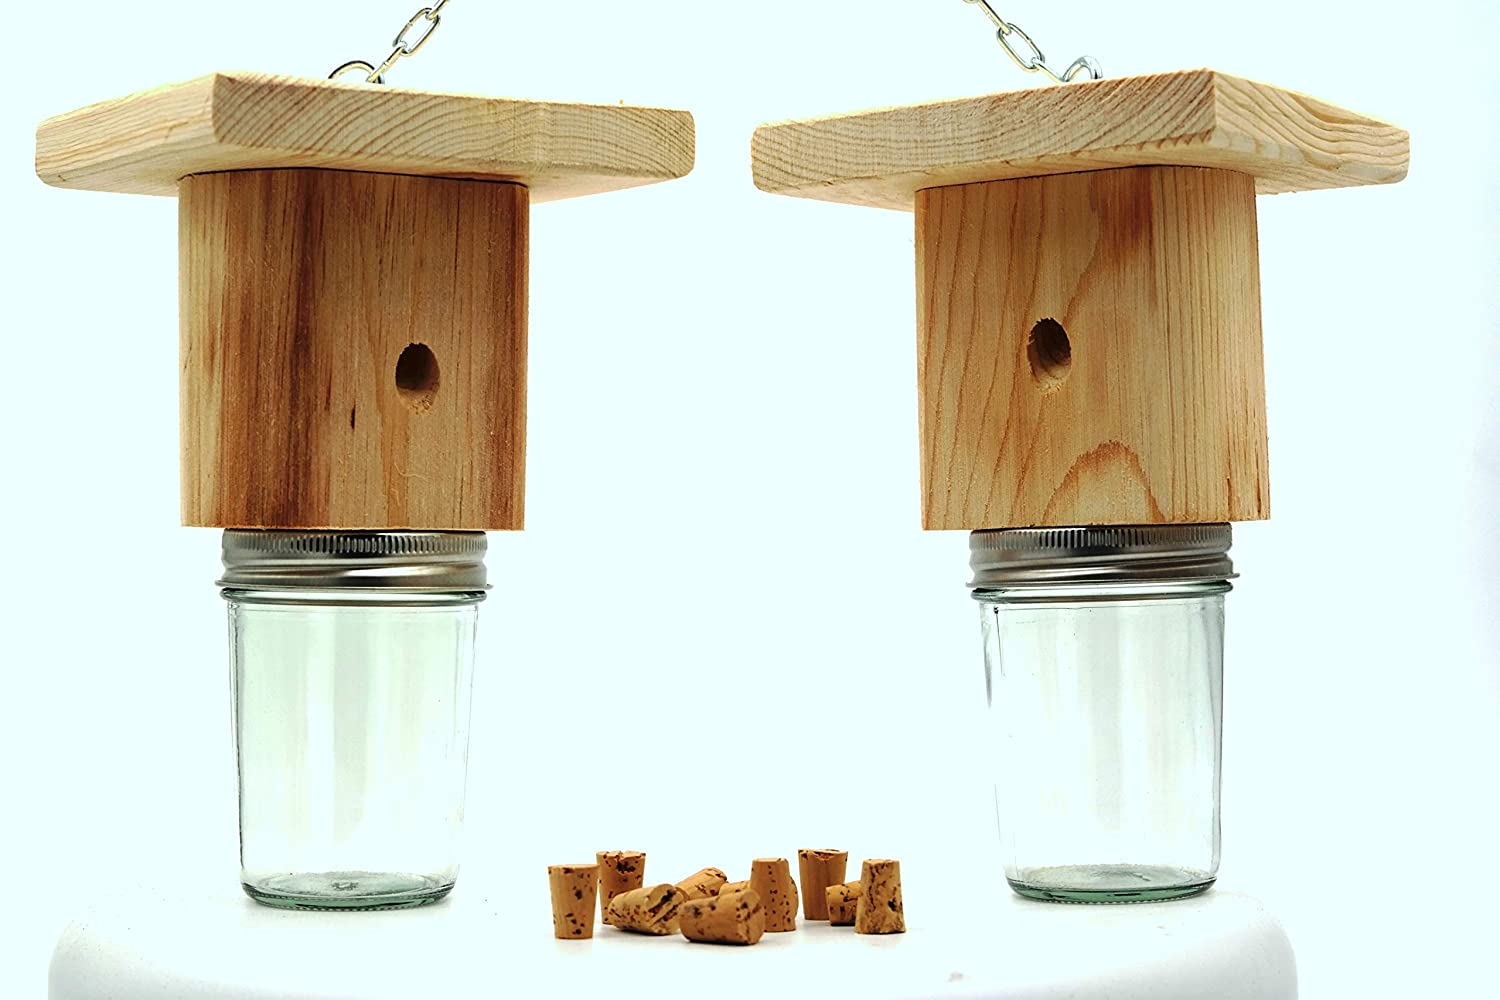 Mac's Best Brothers Natural Wood Carpenter Bee Trap